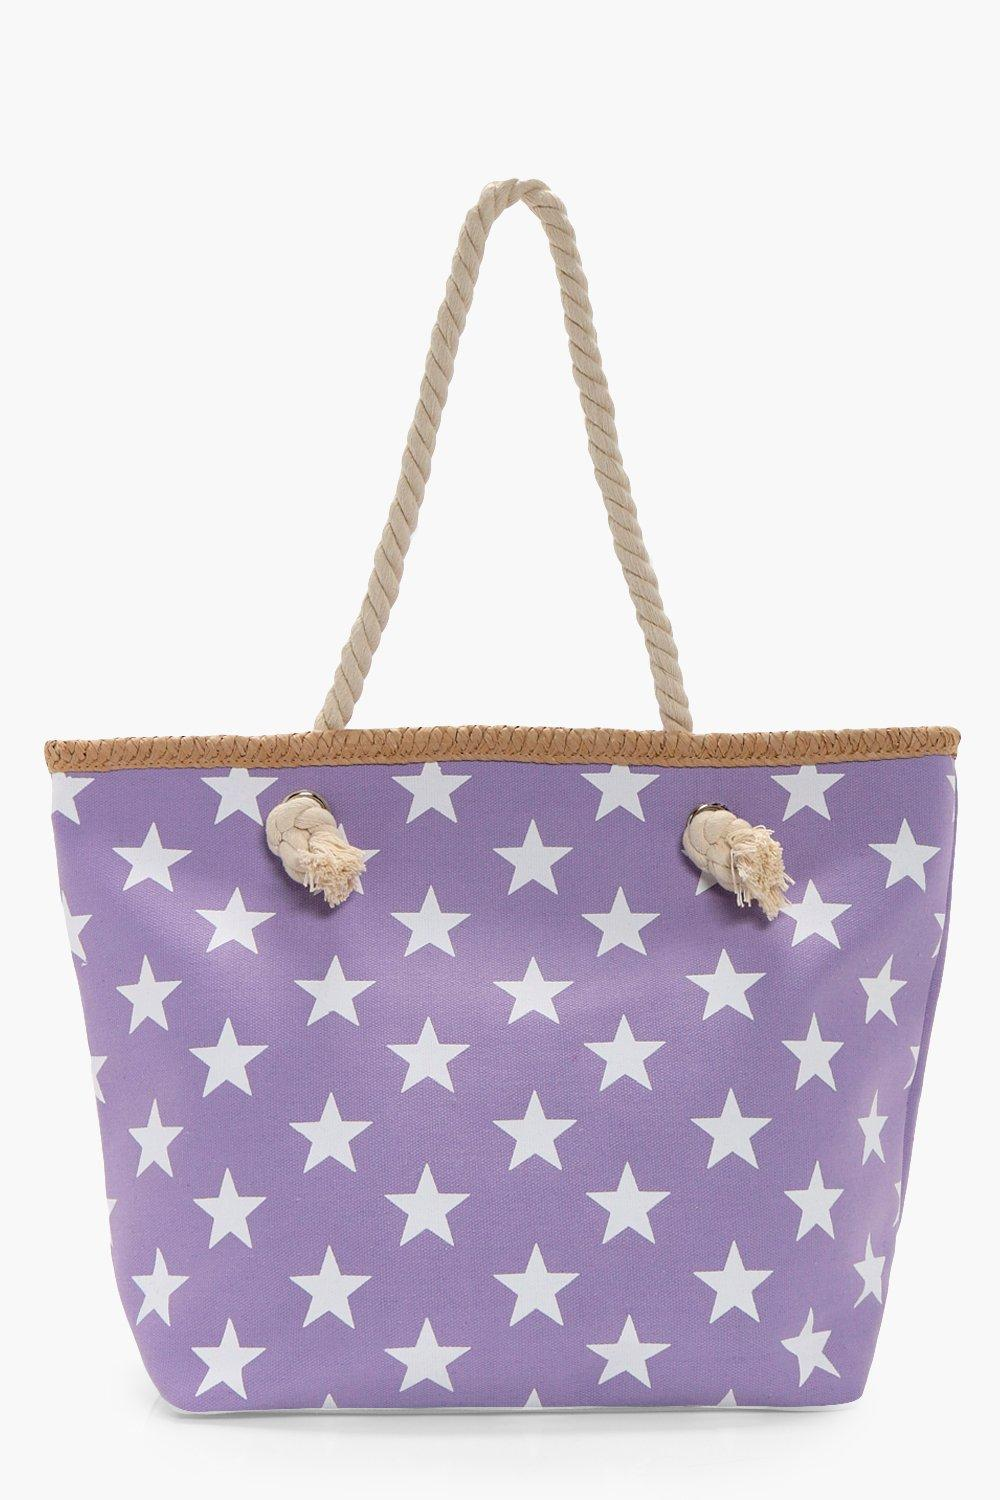 All Over Star Print Beach Bag - lilac - Tilly All